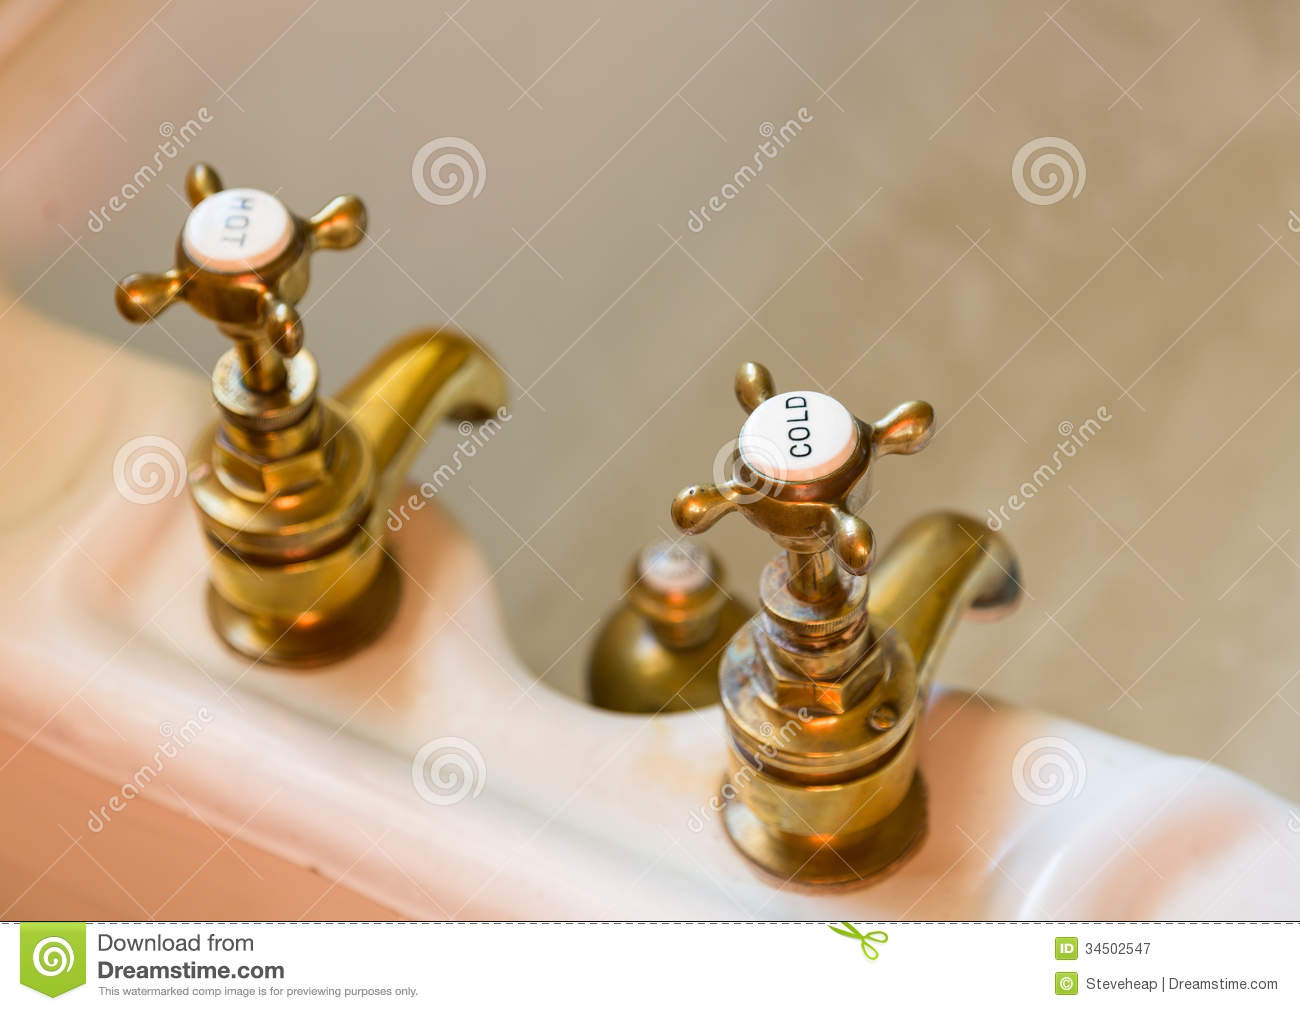 Antique bath taps or faucets